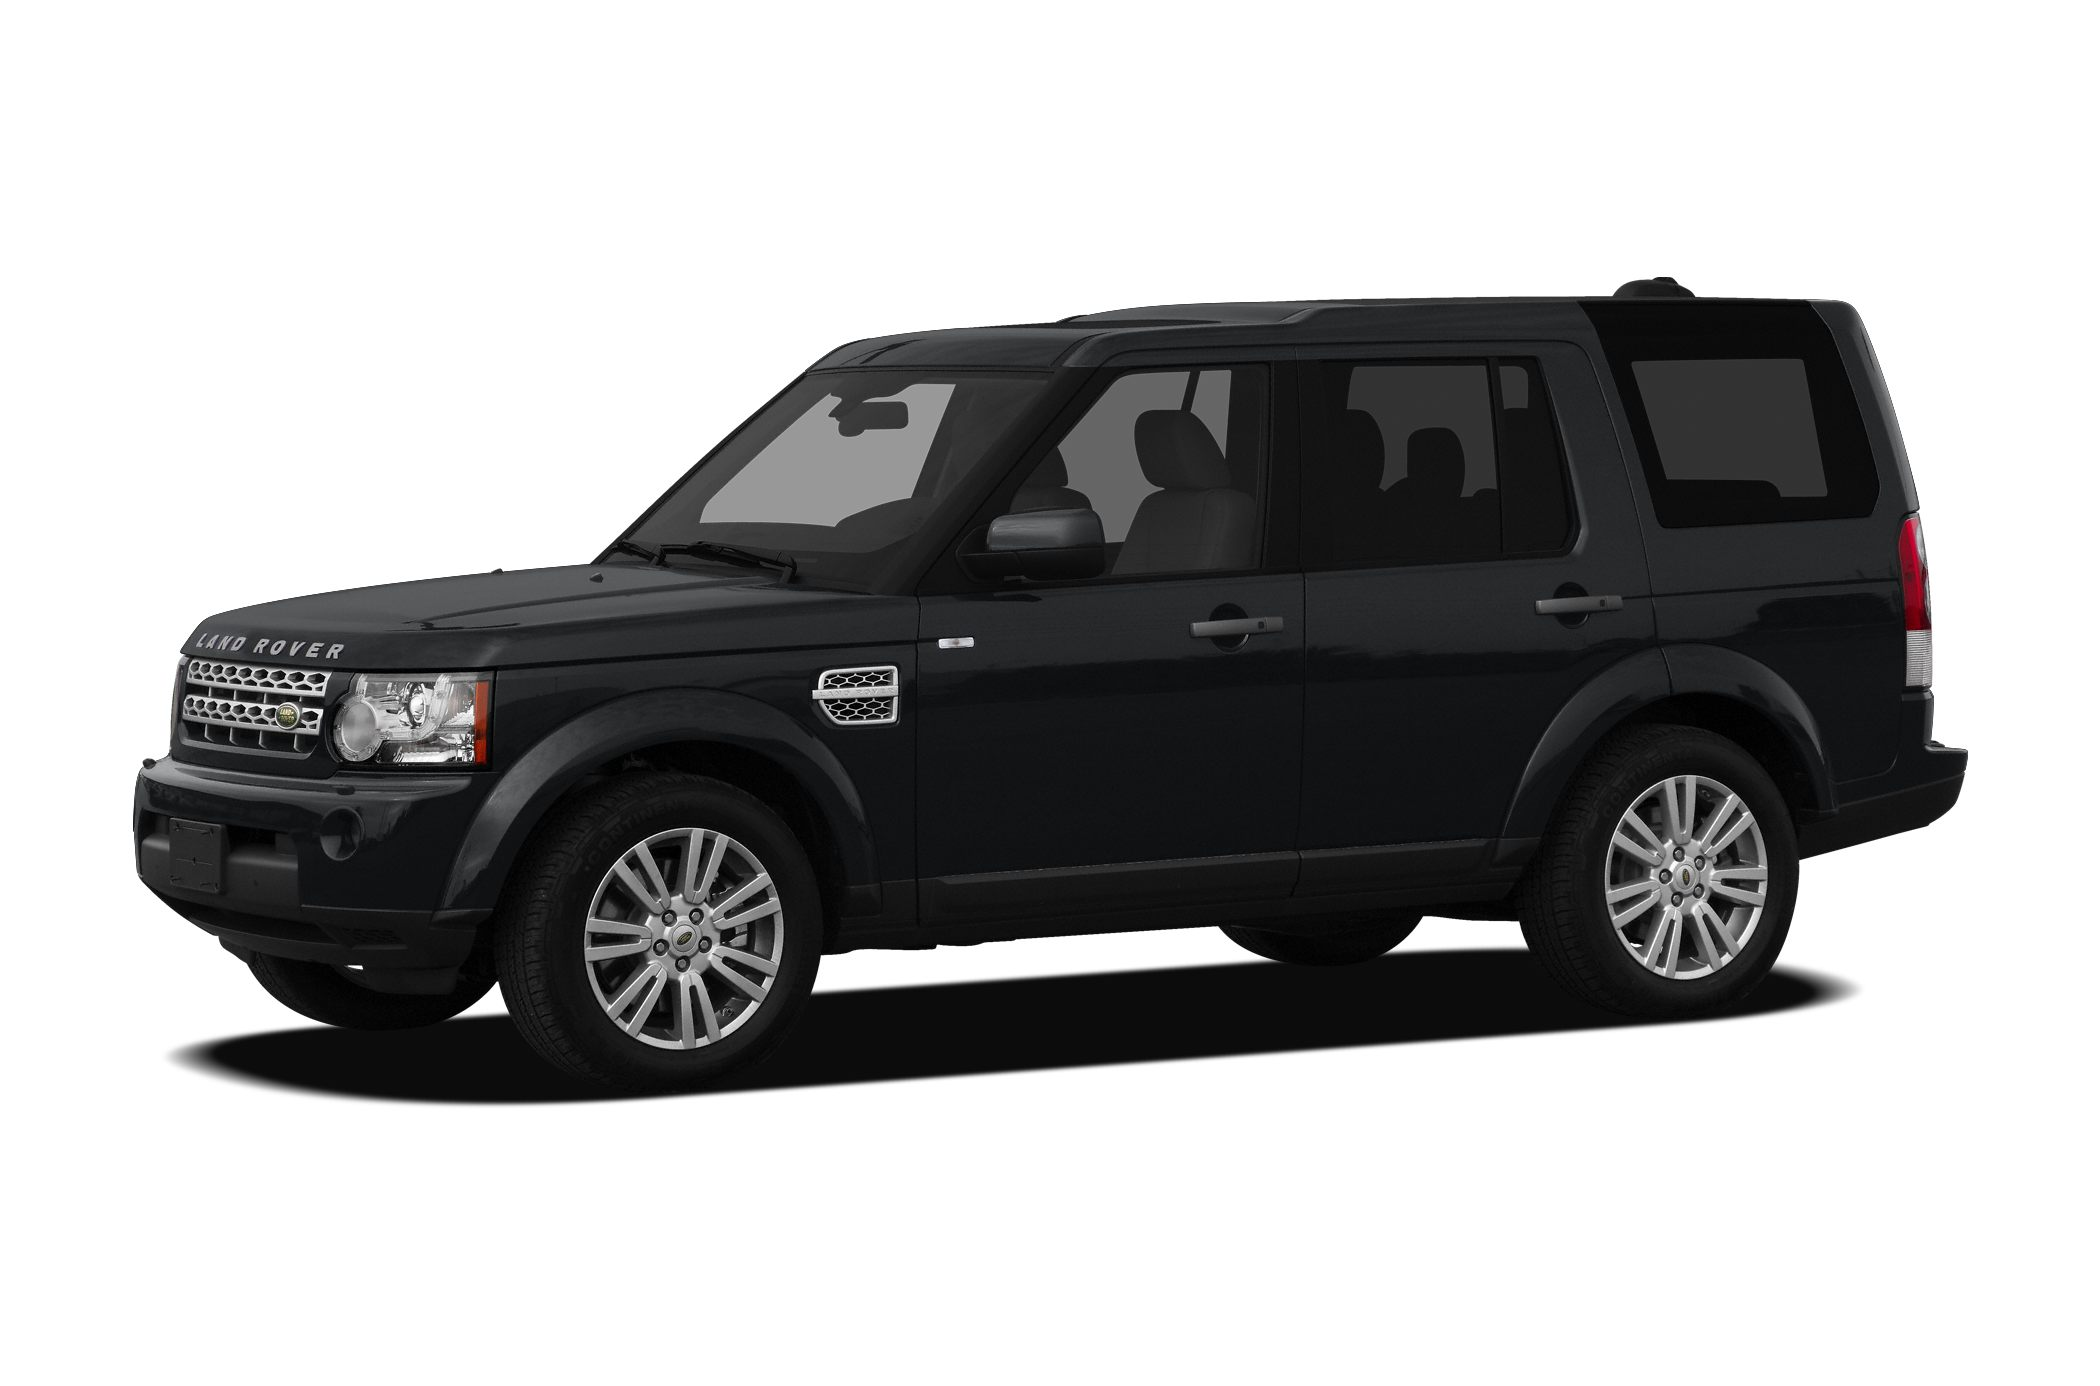 2010 Land Rover LR4 SUV for sale in Lake Worth for $28,999 with 50,636 miles.